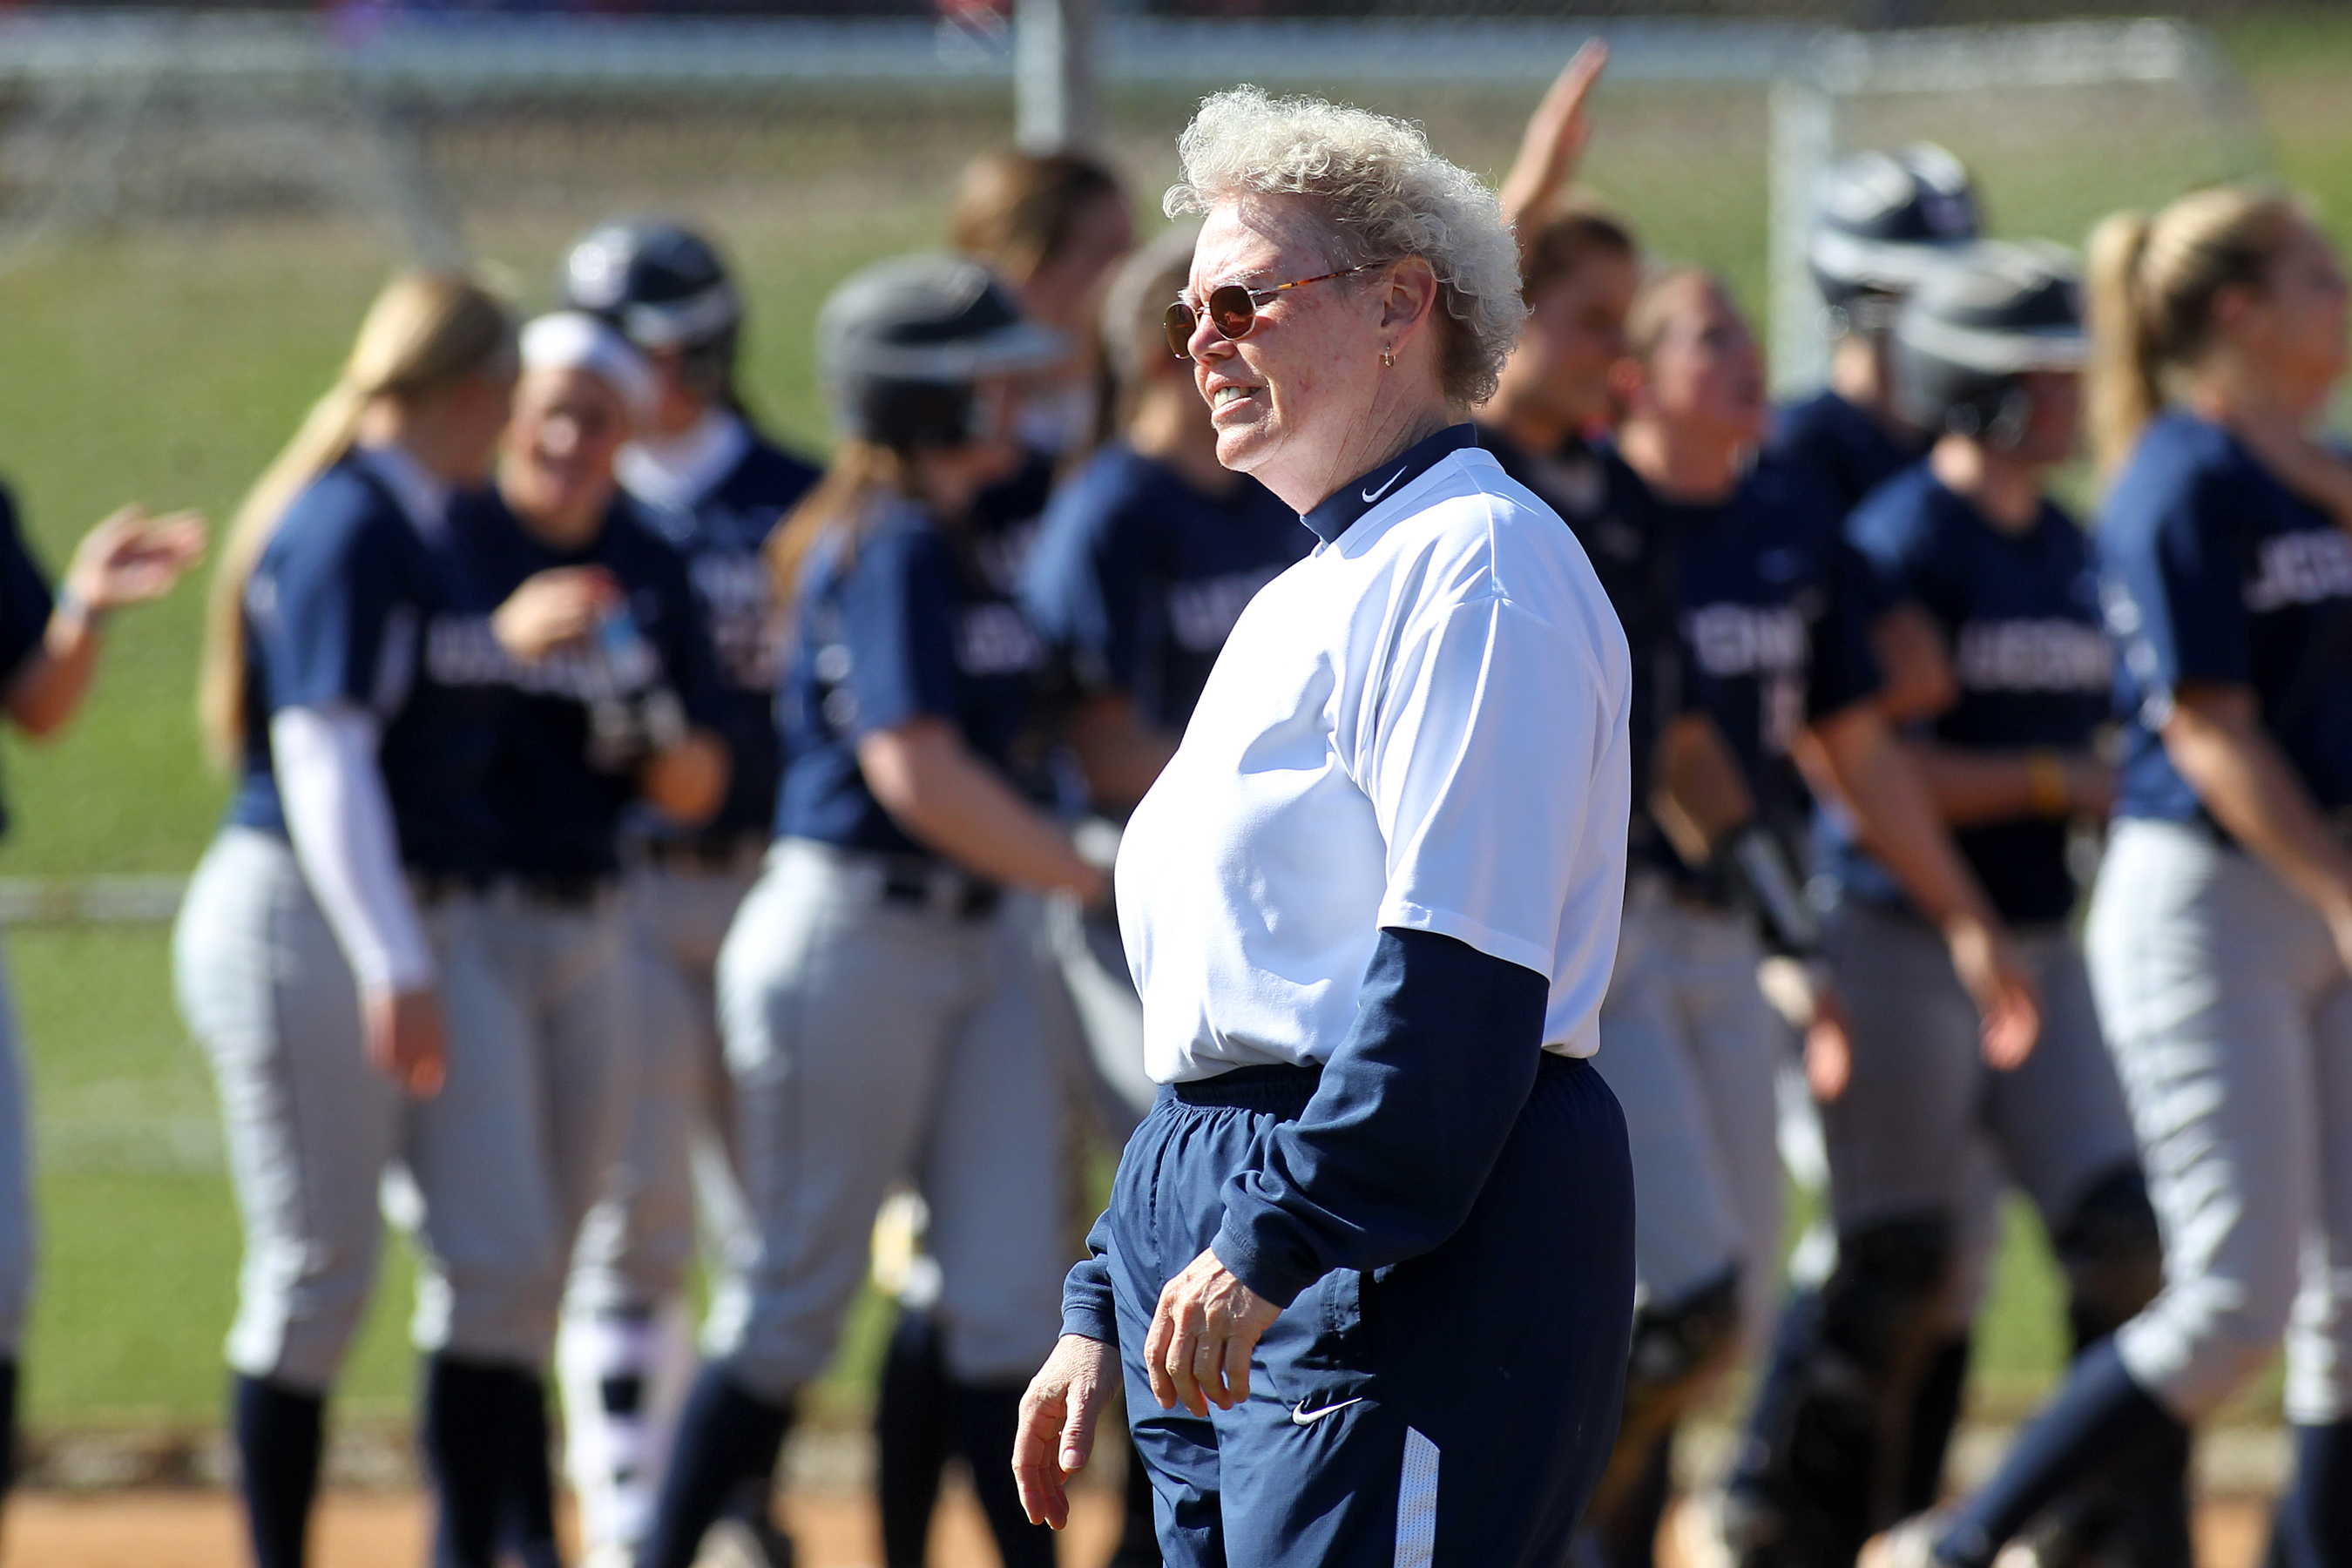 Karen Mullins, head coach of UConn softball 1983-2014. (Stephen Slade '89 (SFA) for UConn)